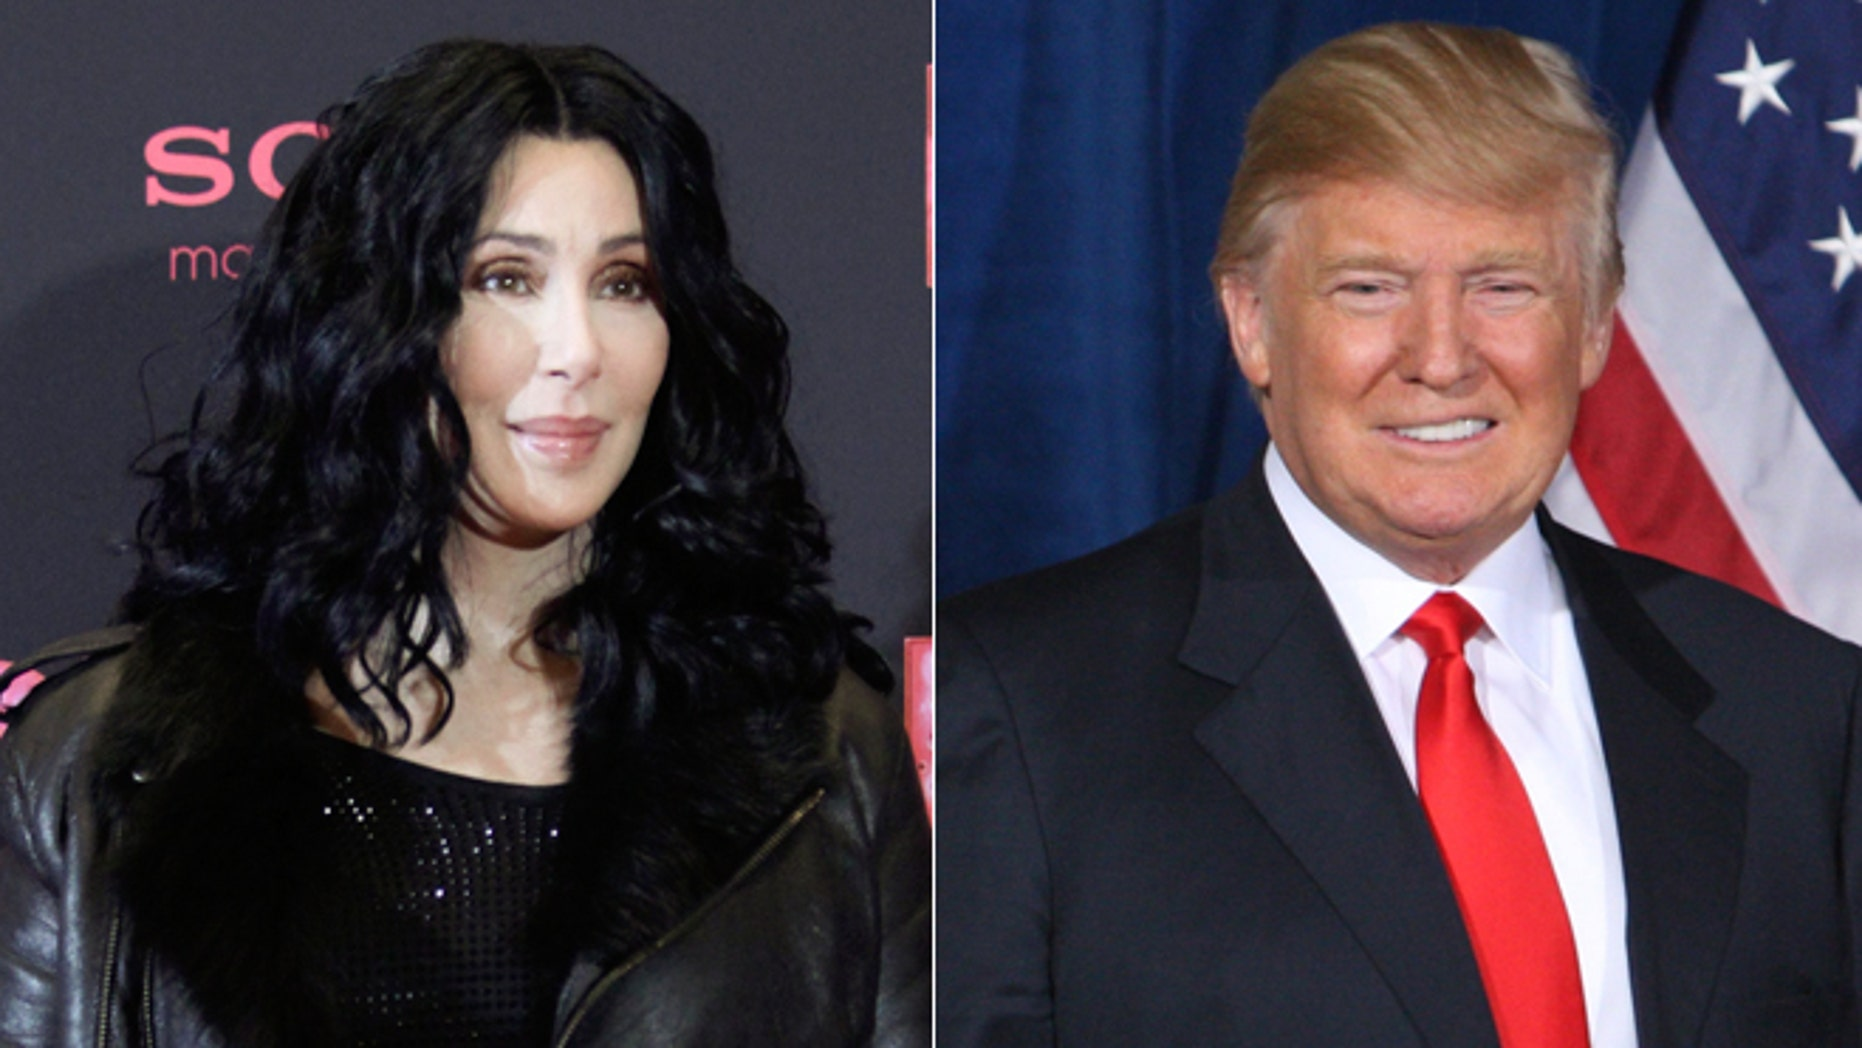 """Cher and Donald Trump got into a Twitter war when she referred to his hair as """"his rug."""""""